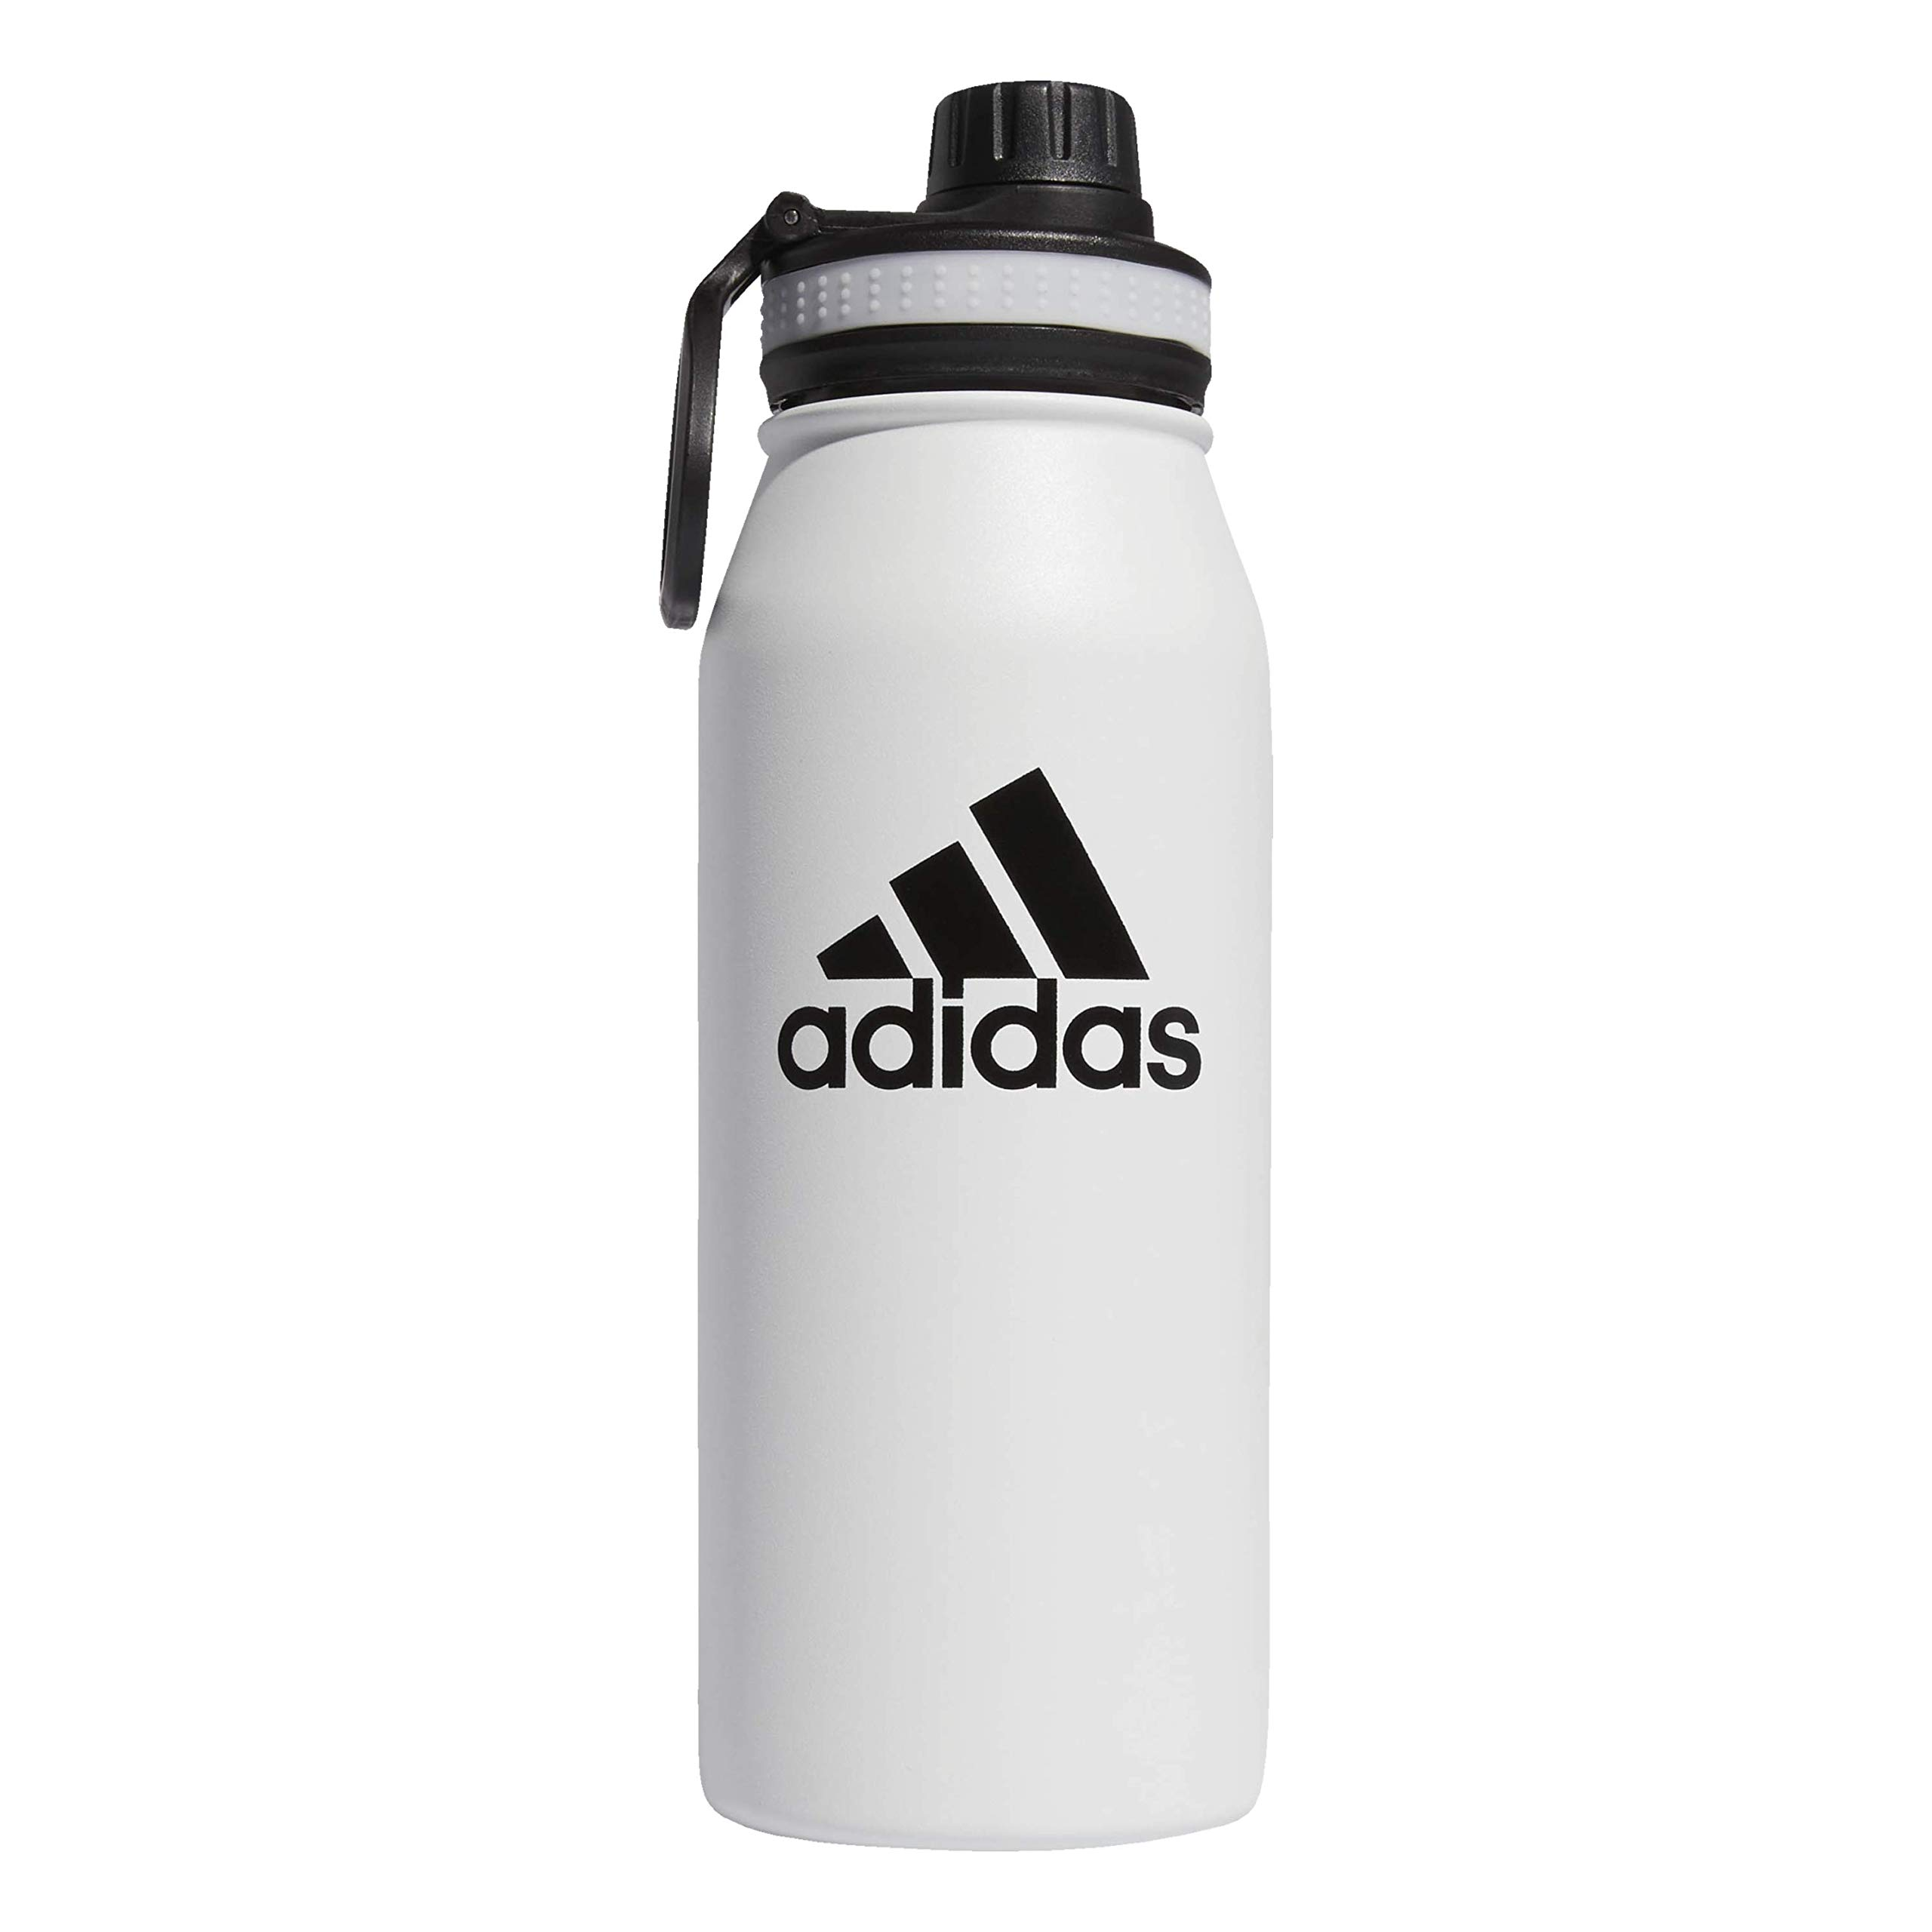 adidas Stainless Steel Insulated Bottle